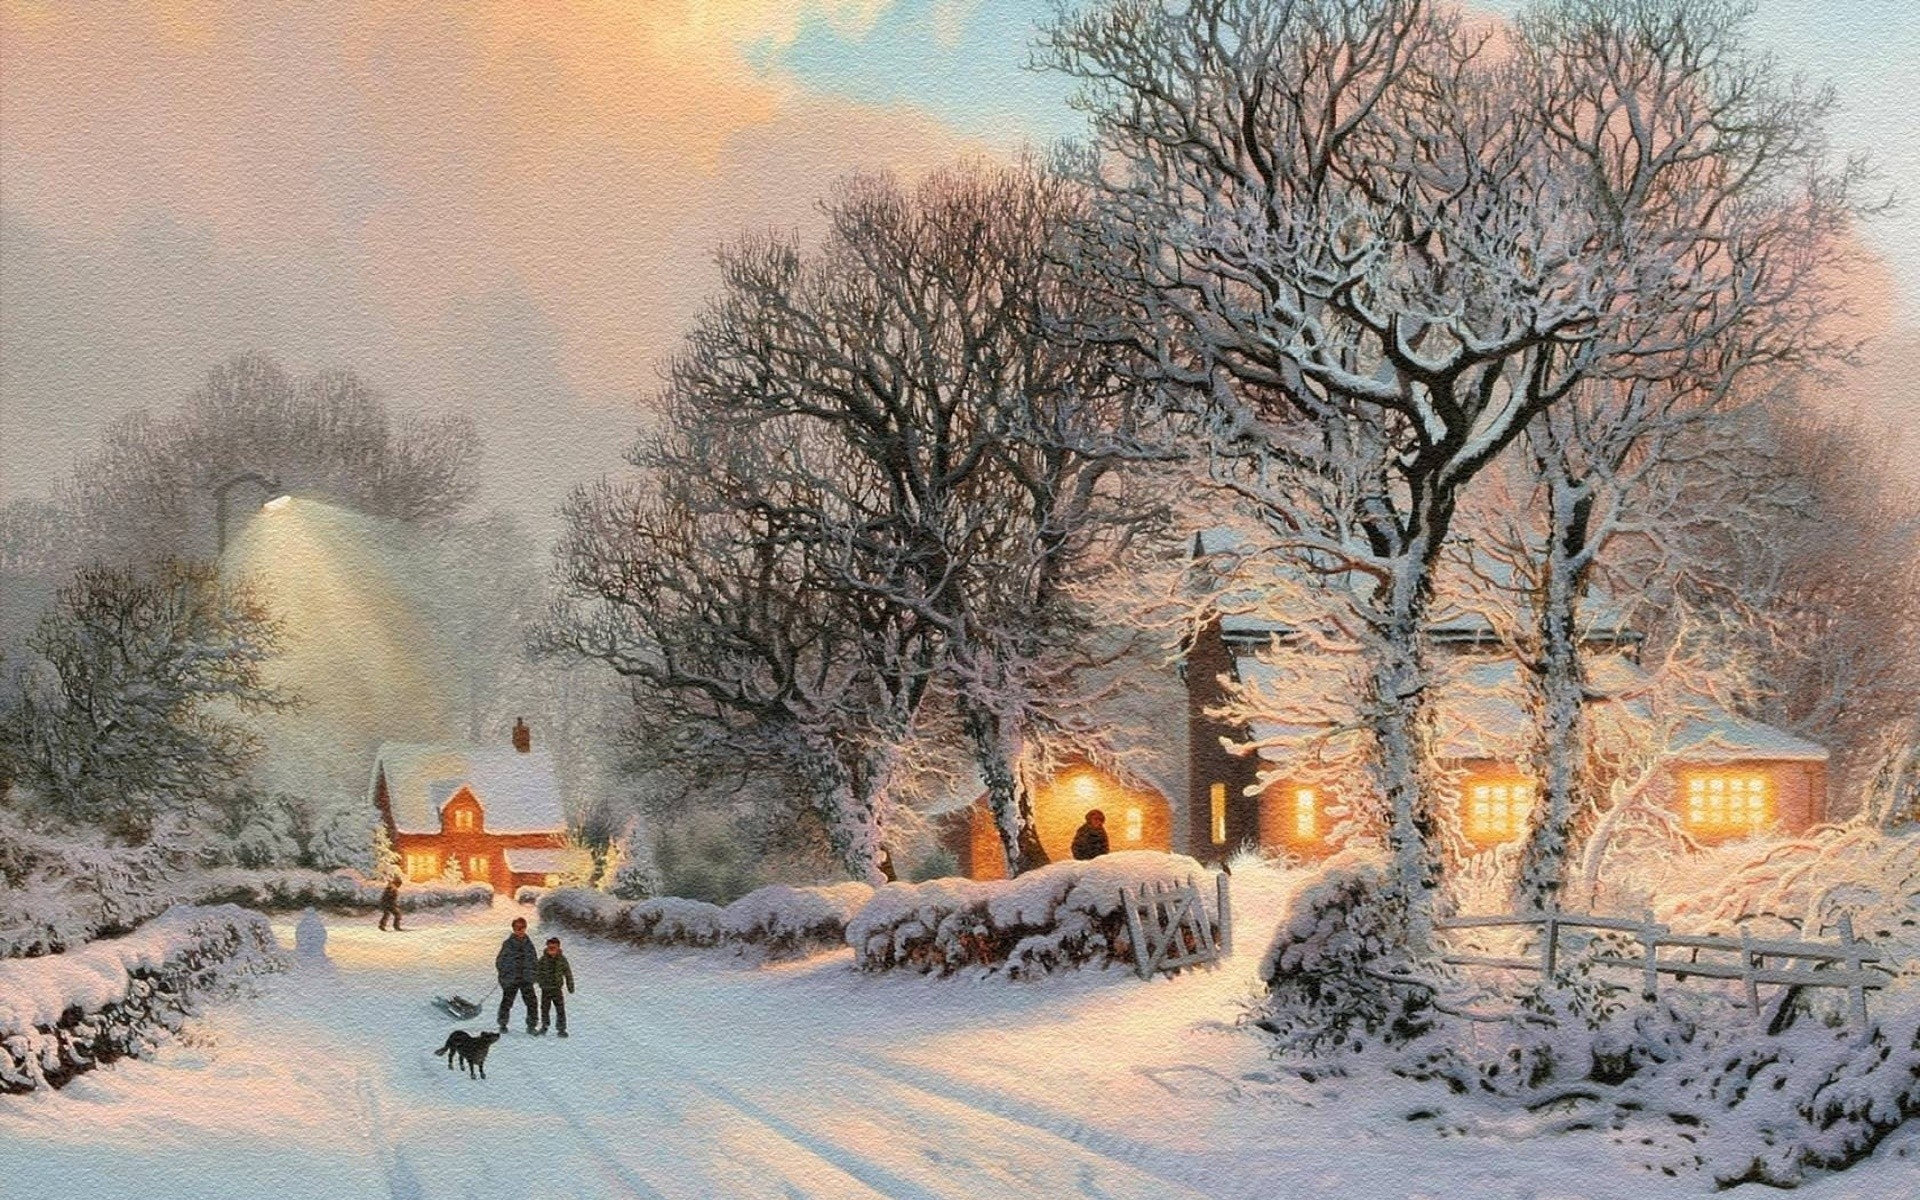 1920x1200 thomas kinkade christmas tree christmas painting hometow android wallpapers for free